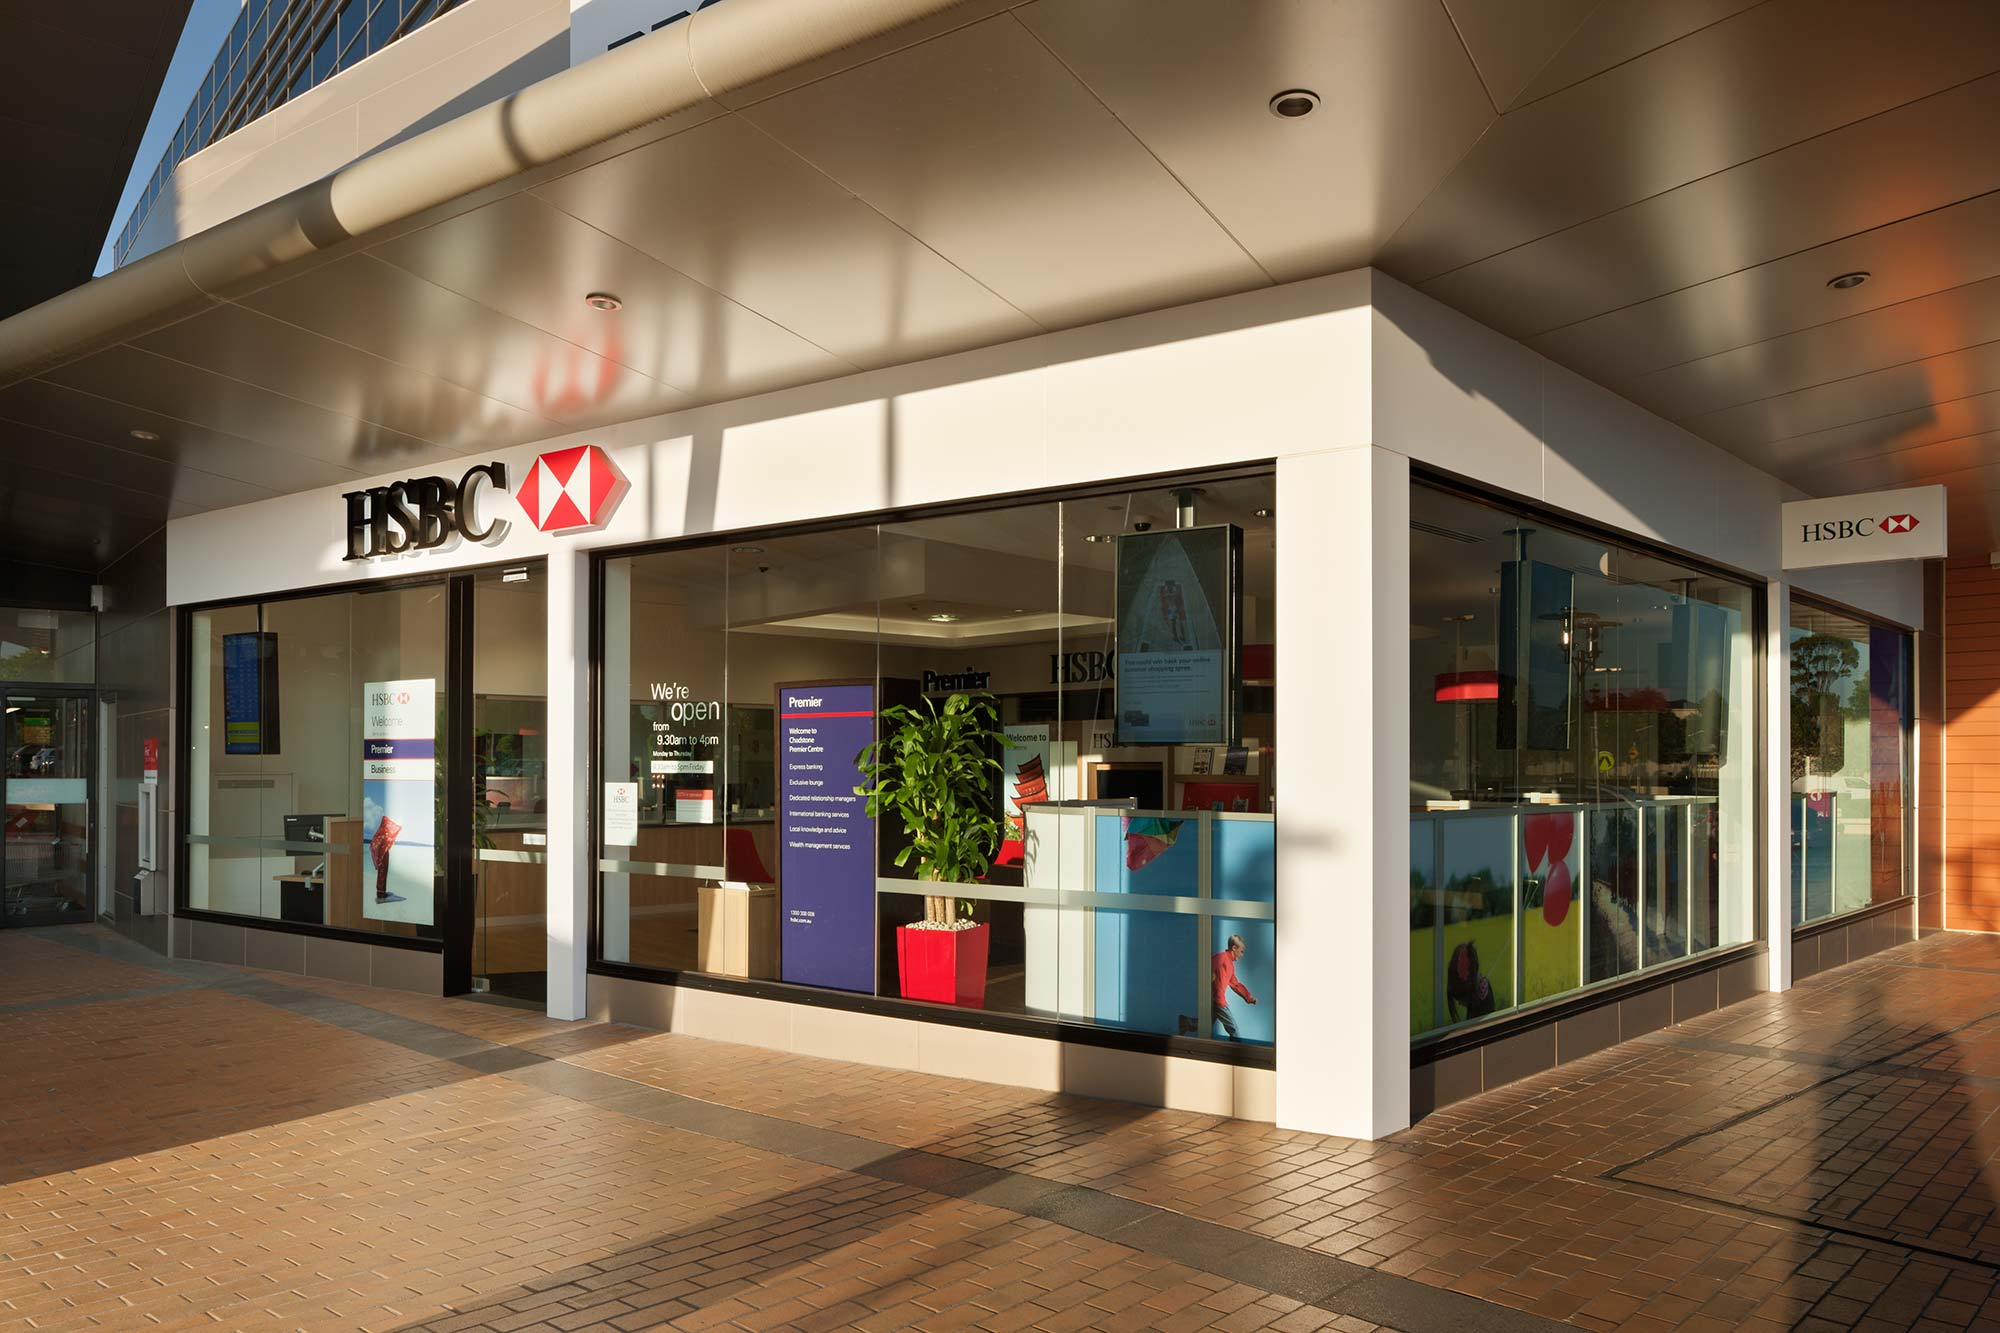 Alpha Project Management has helped HSBC with a retail branch rollout